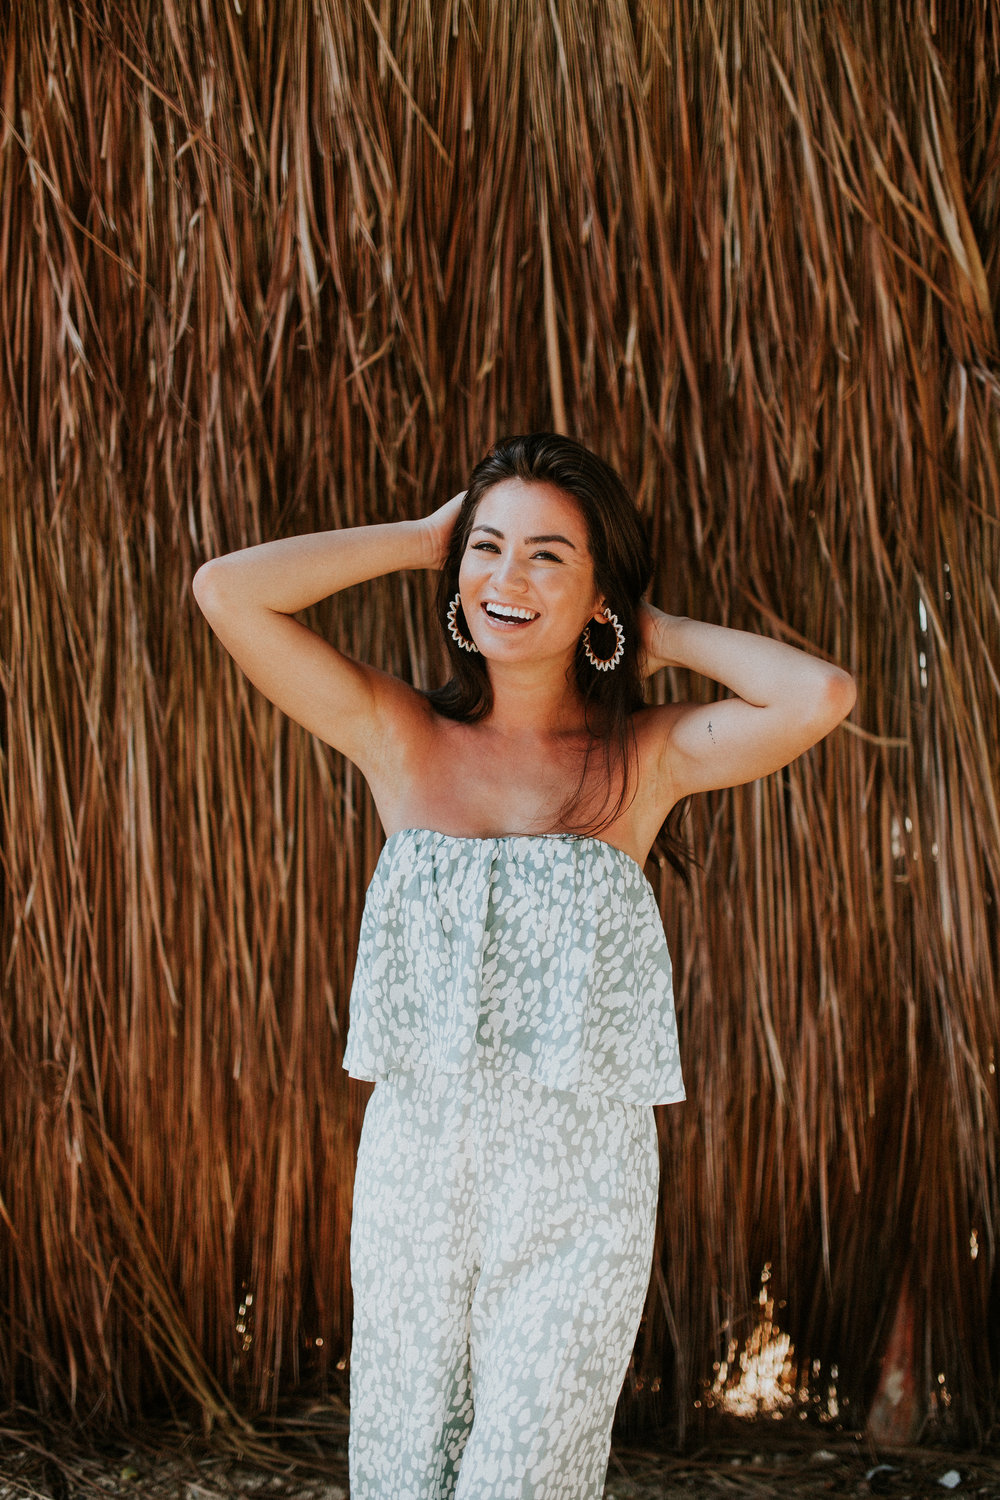 Travel Guide Tulum Mexico Top 20 Vacation Ideas with The Bachelor Caila Quinn Hapa Filipina Beach Look